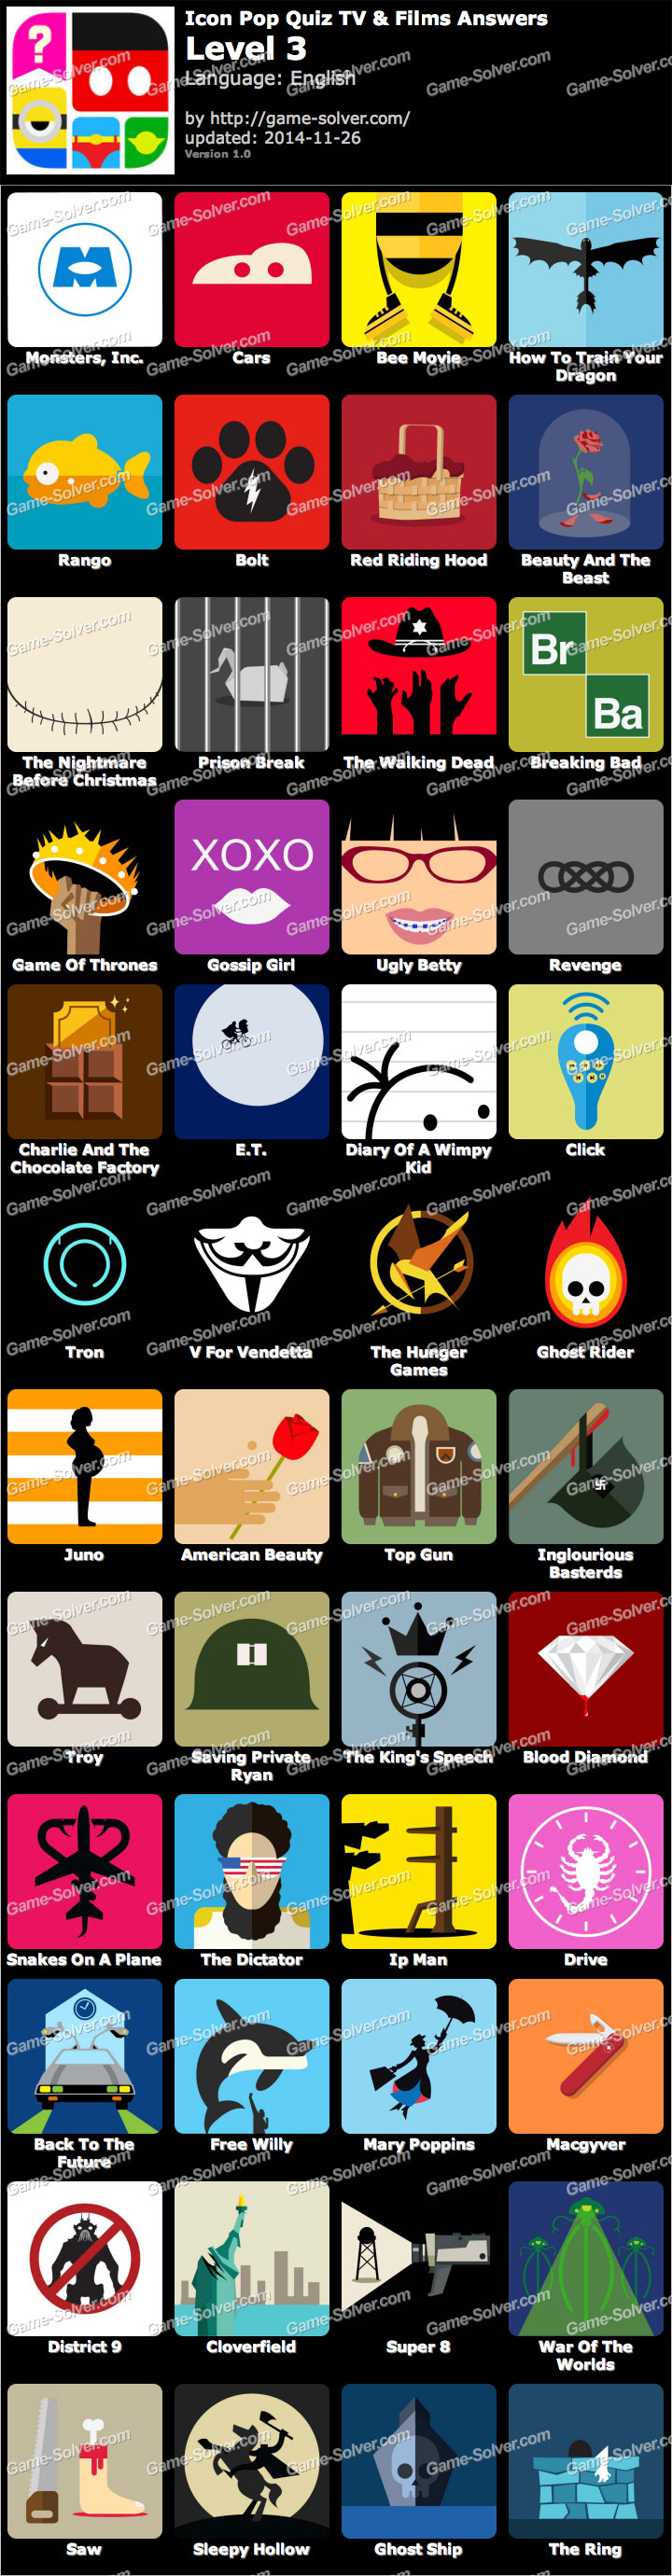 Icon pop quiz tv and movies level 2 answers